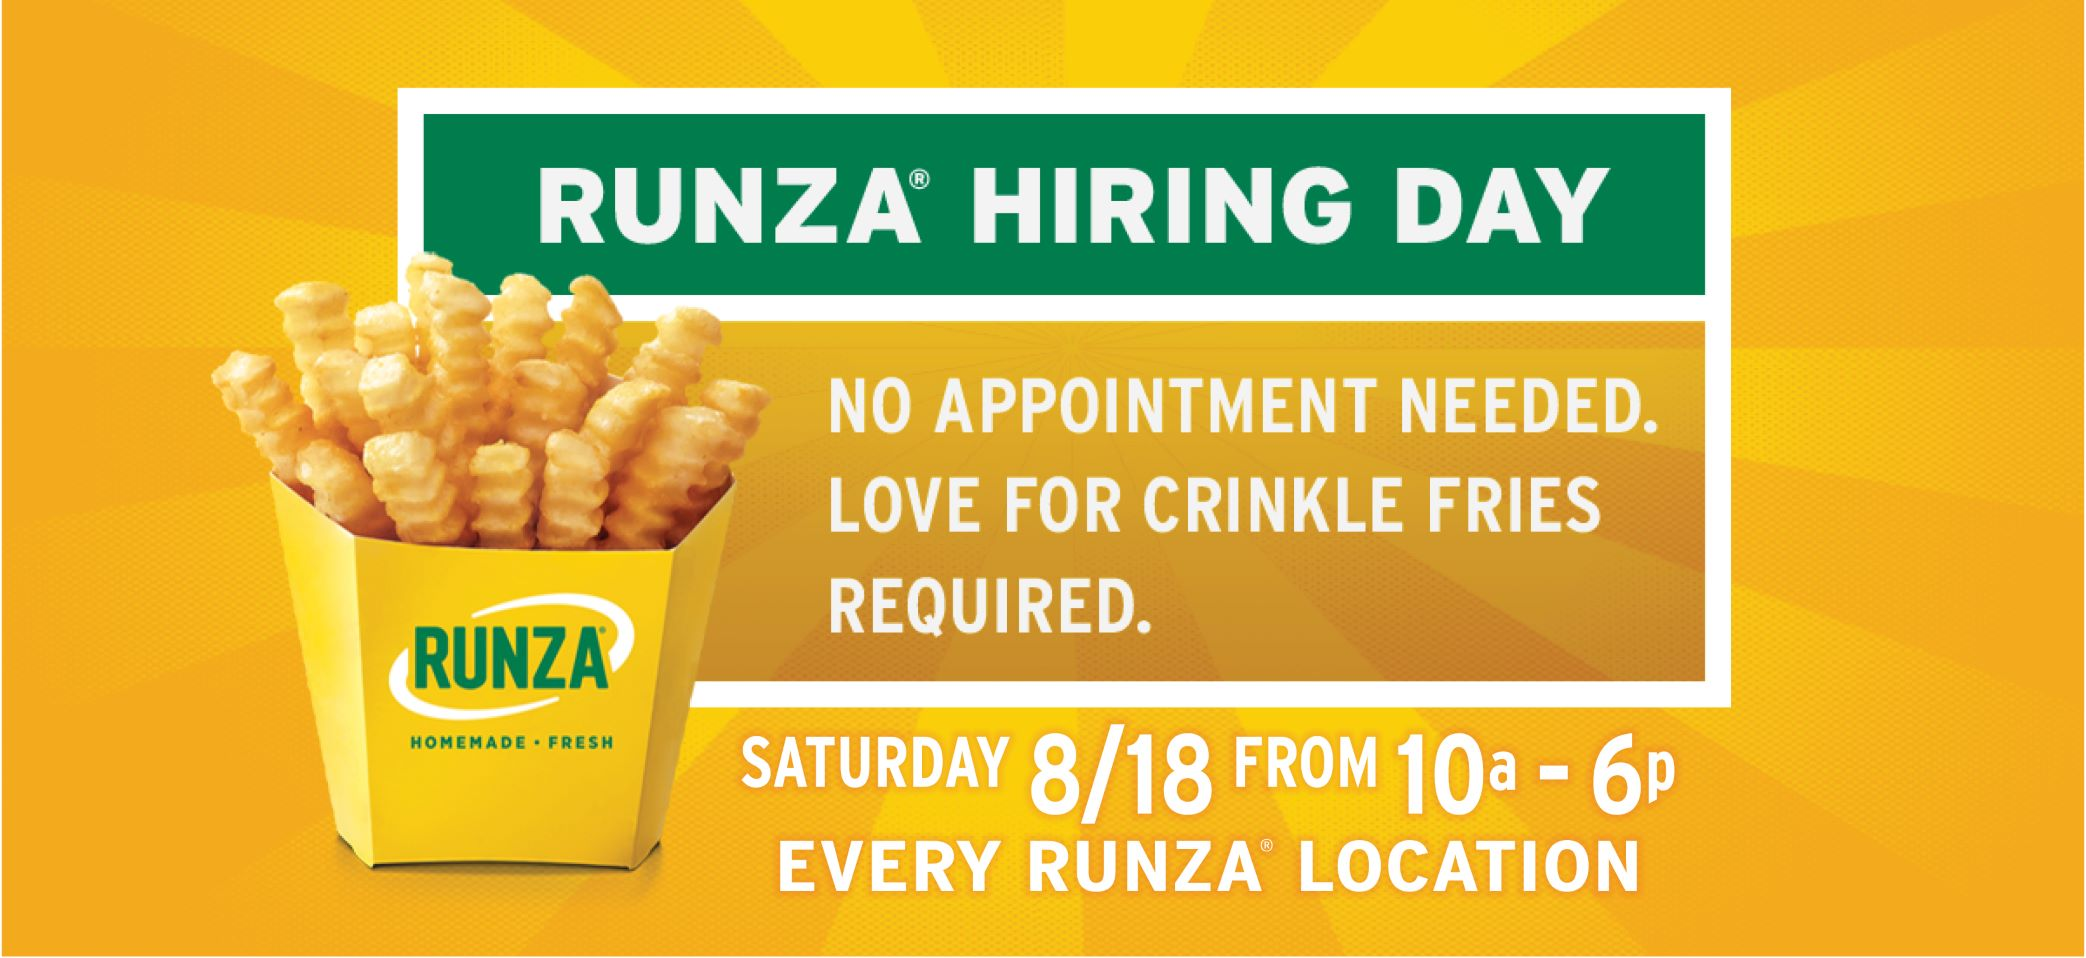 Runza Hiring Day 2018